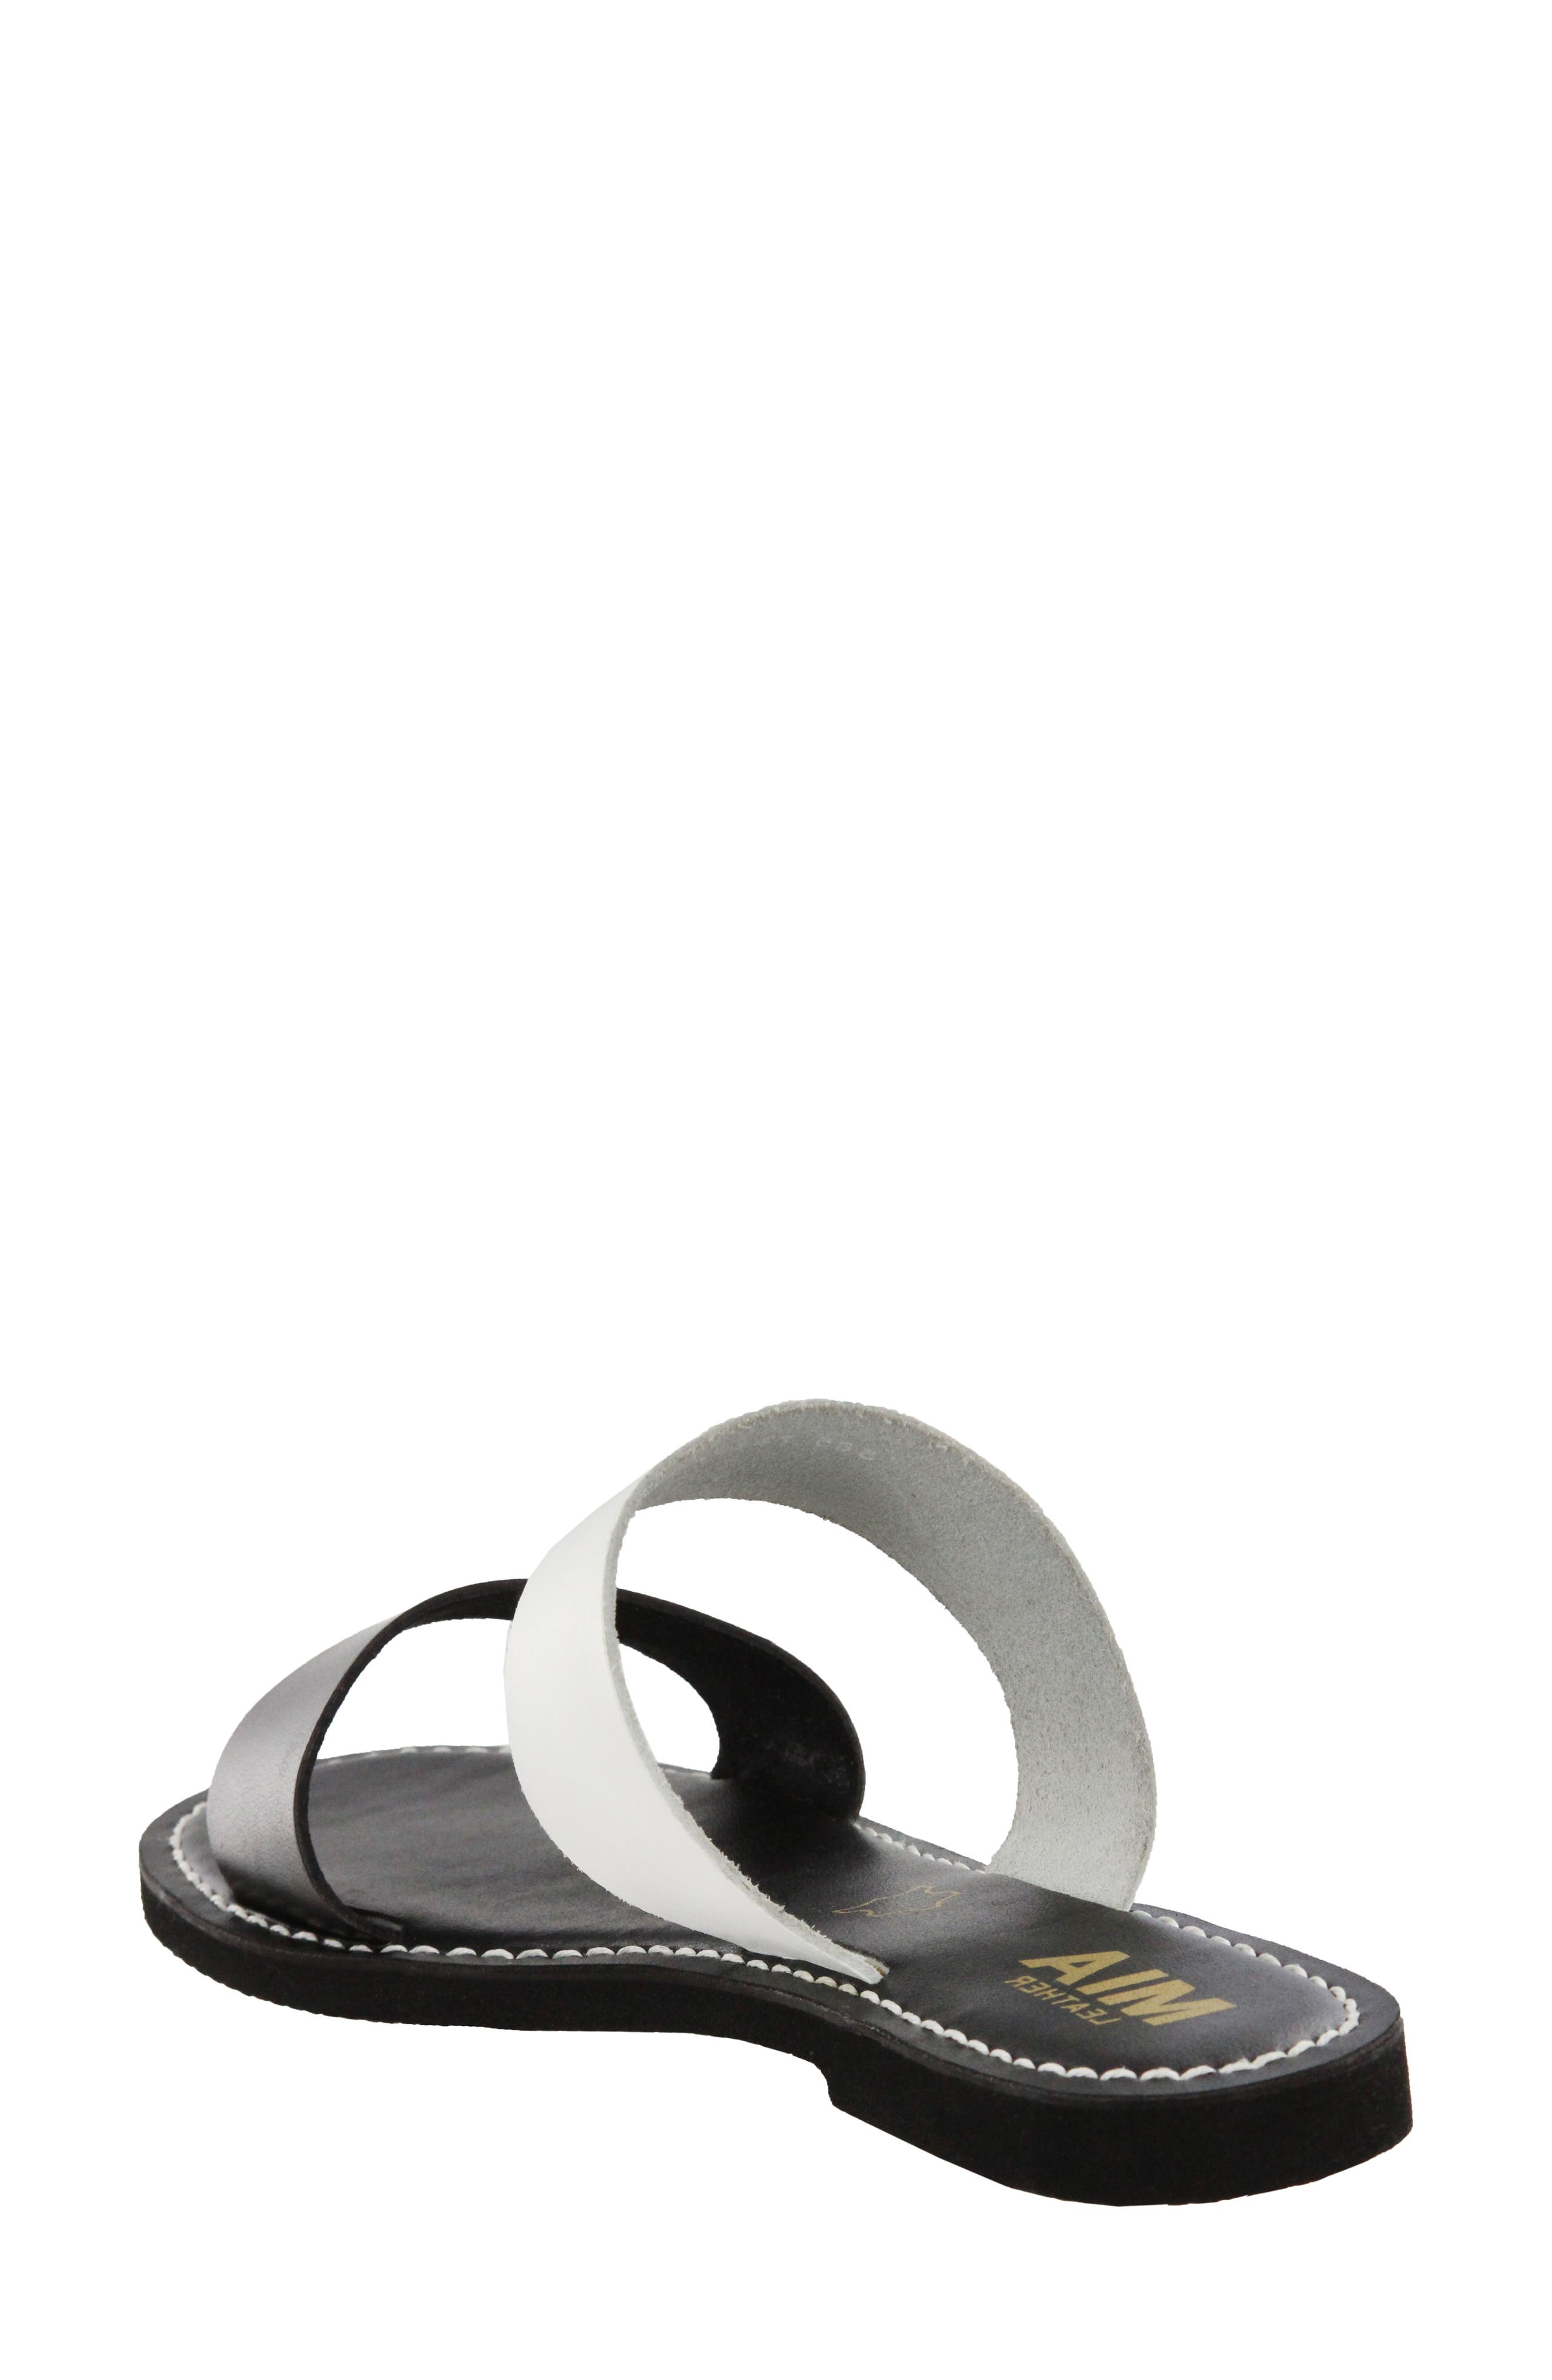 Nila Two-Band Slide Sandal,                             Alternate thumbnail 2, color,                             Black/ White Leather